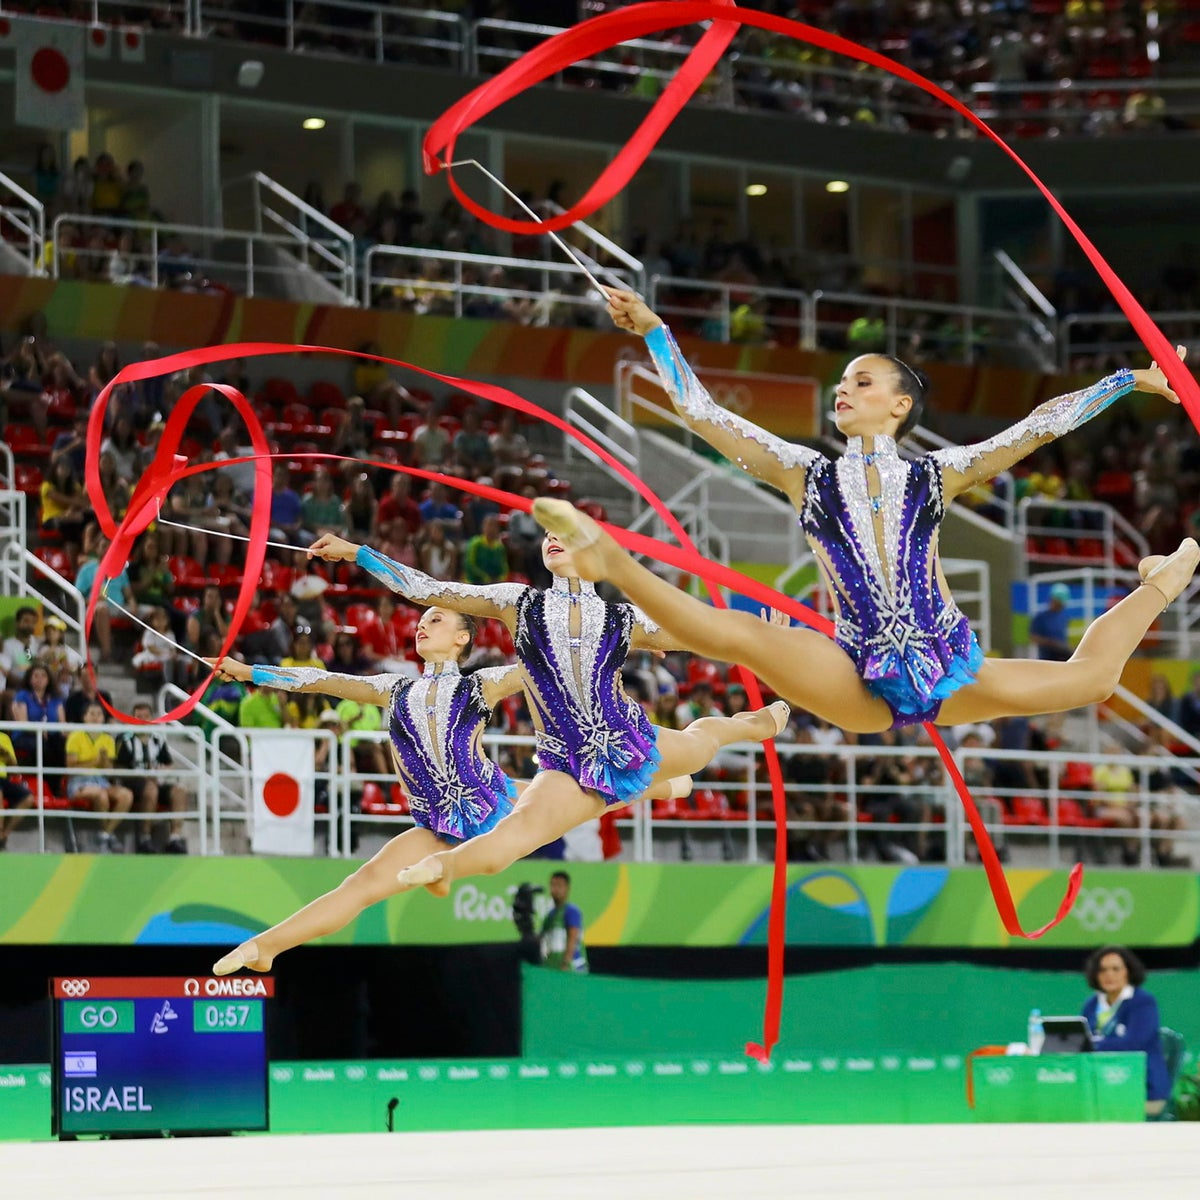 Team Israel compete using ribbons at the Summer Olympics in Rio de Janeiro, Brazil, August 20, 2016.